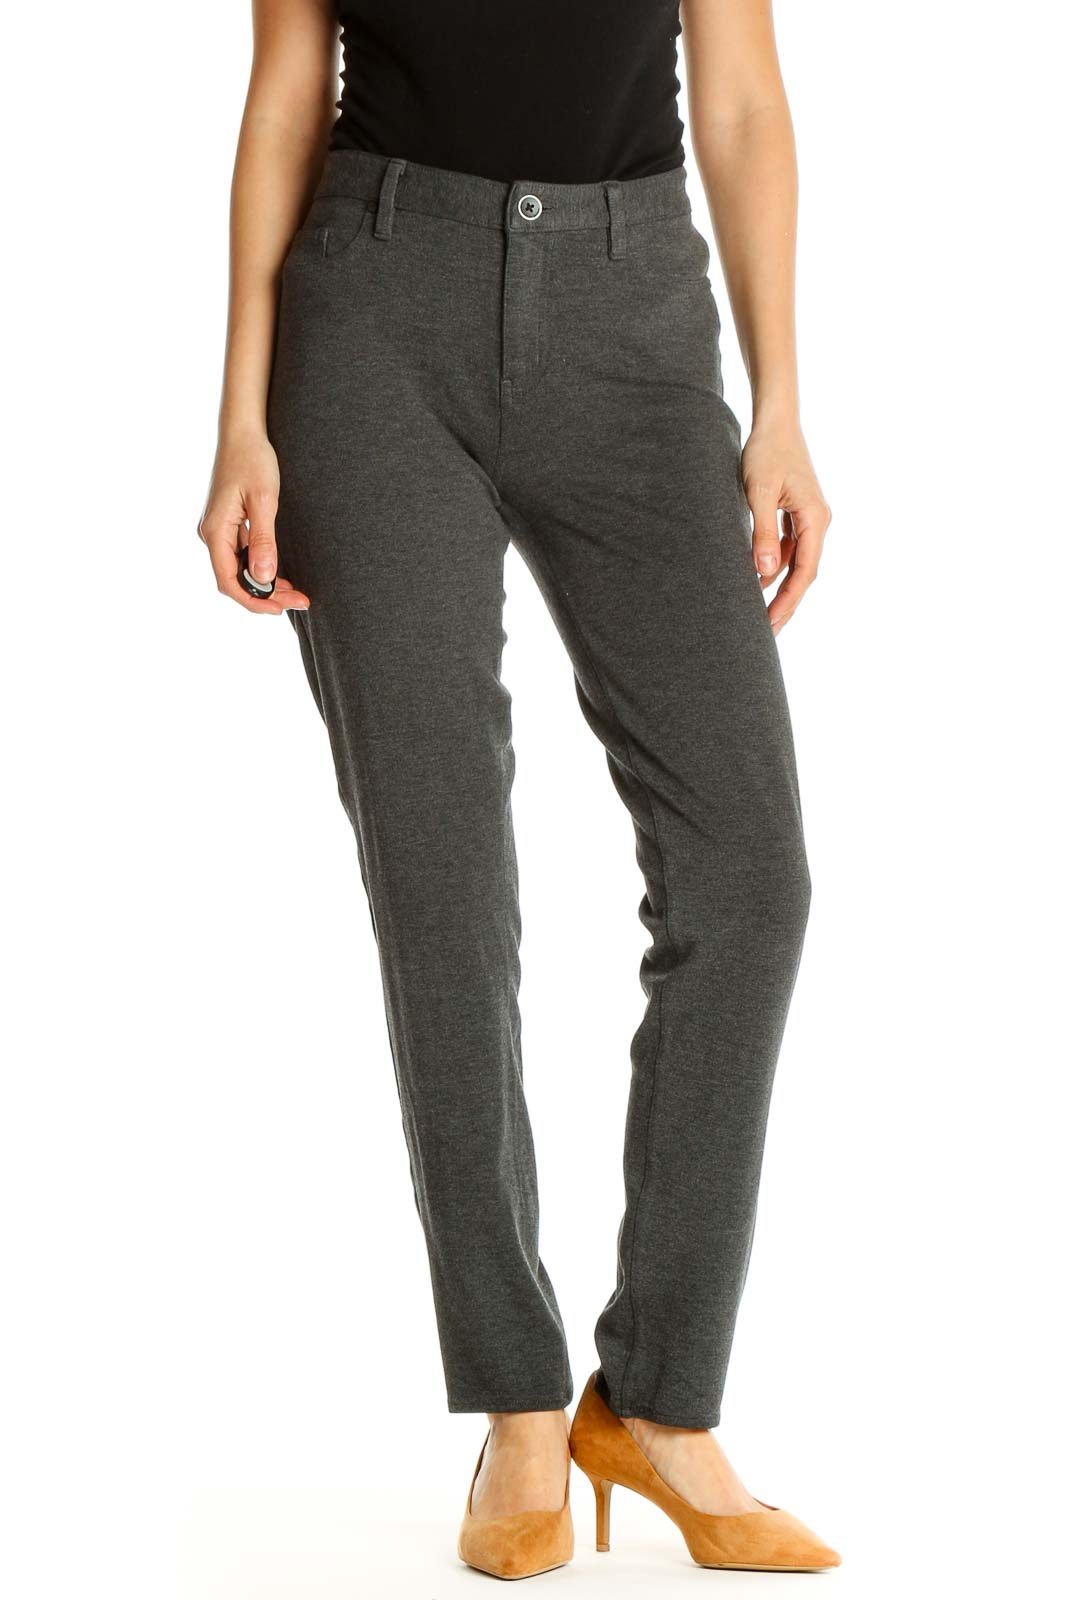 Gray Textured Casual Trousers Front